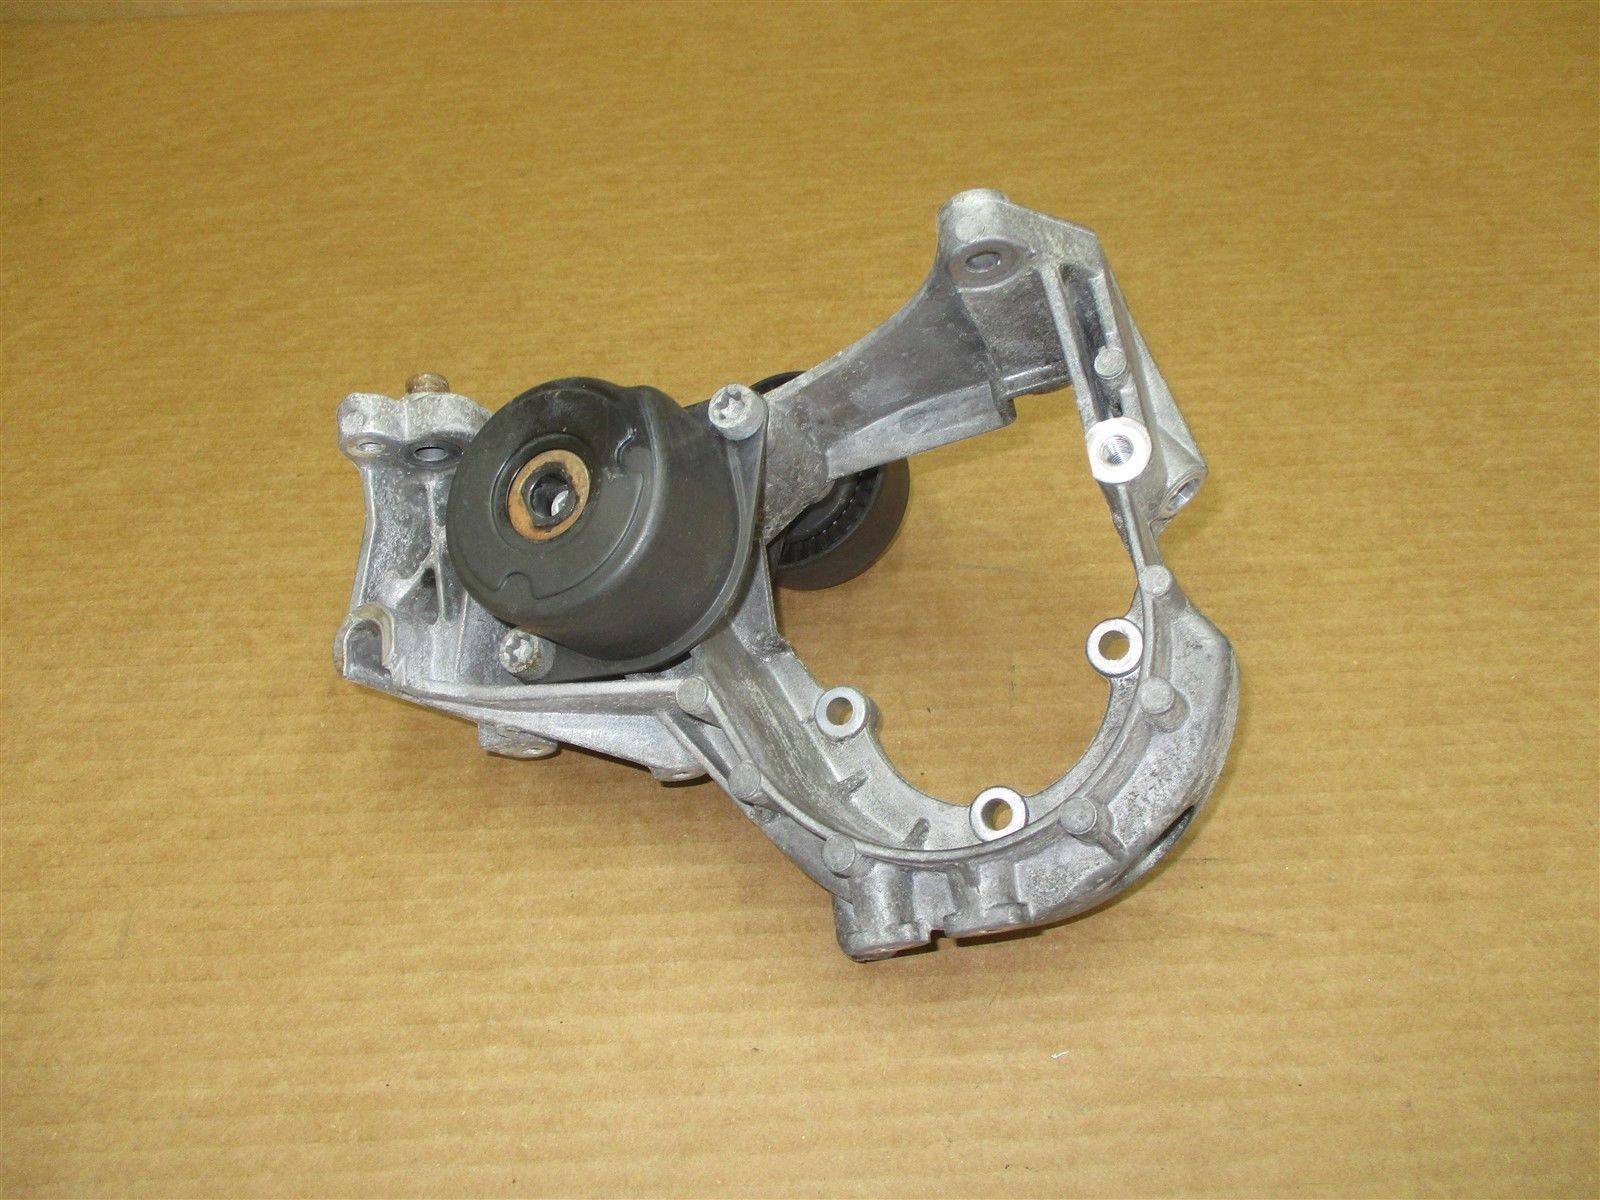 08 Boxster RWD Porsche 987 Engine 2.7 MOUNTING BRACKET + PULLEY 127,351